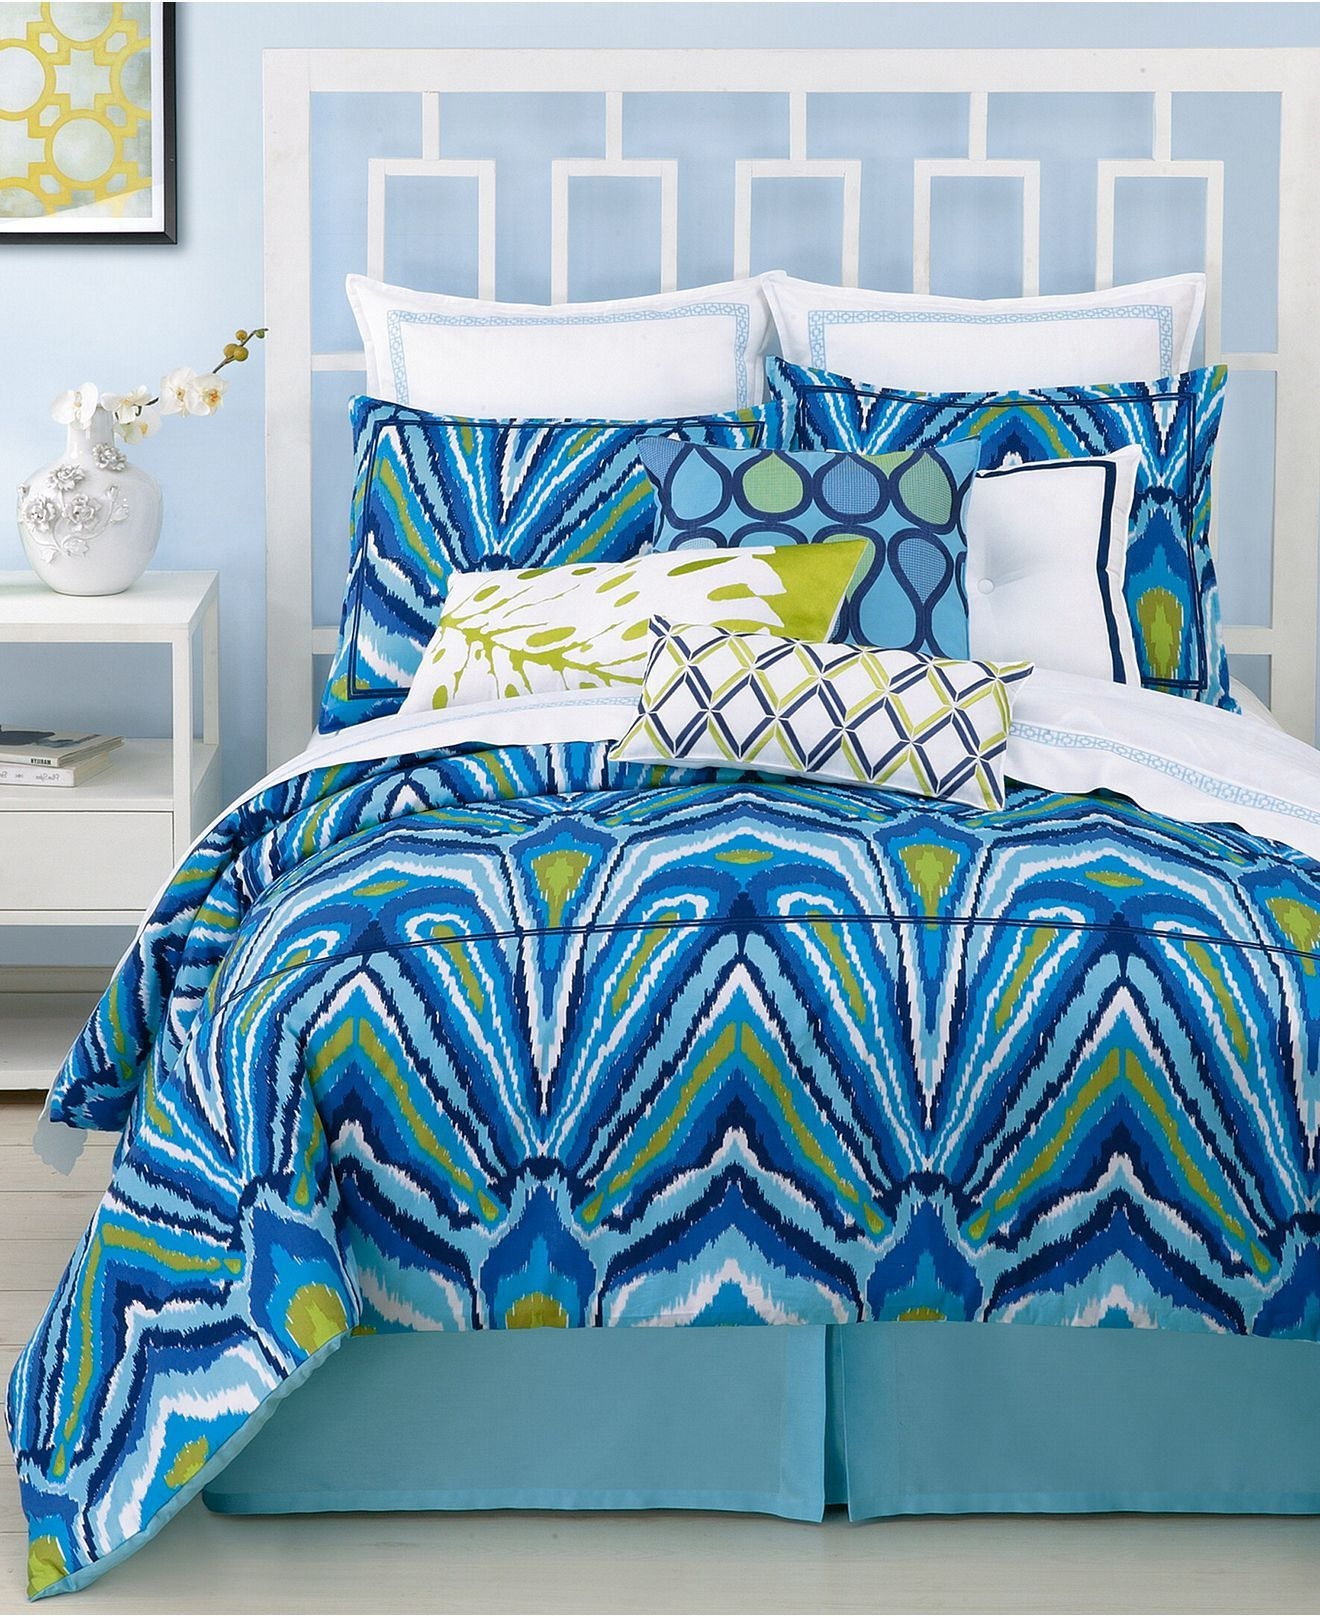 Trina Turk Bedding Blue Peacock Comforter And Duvet Cover Sets